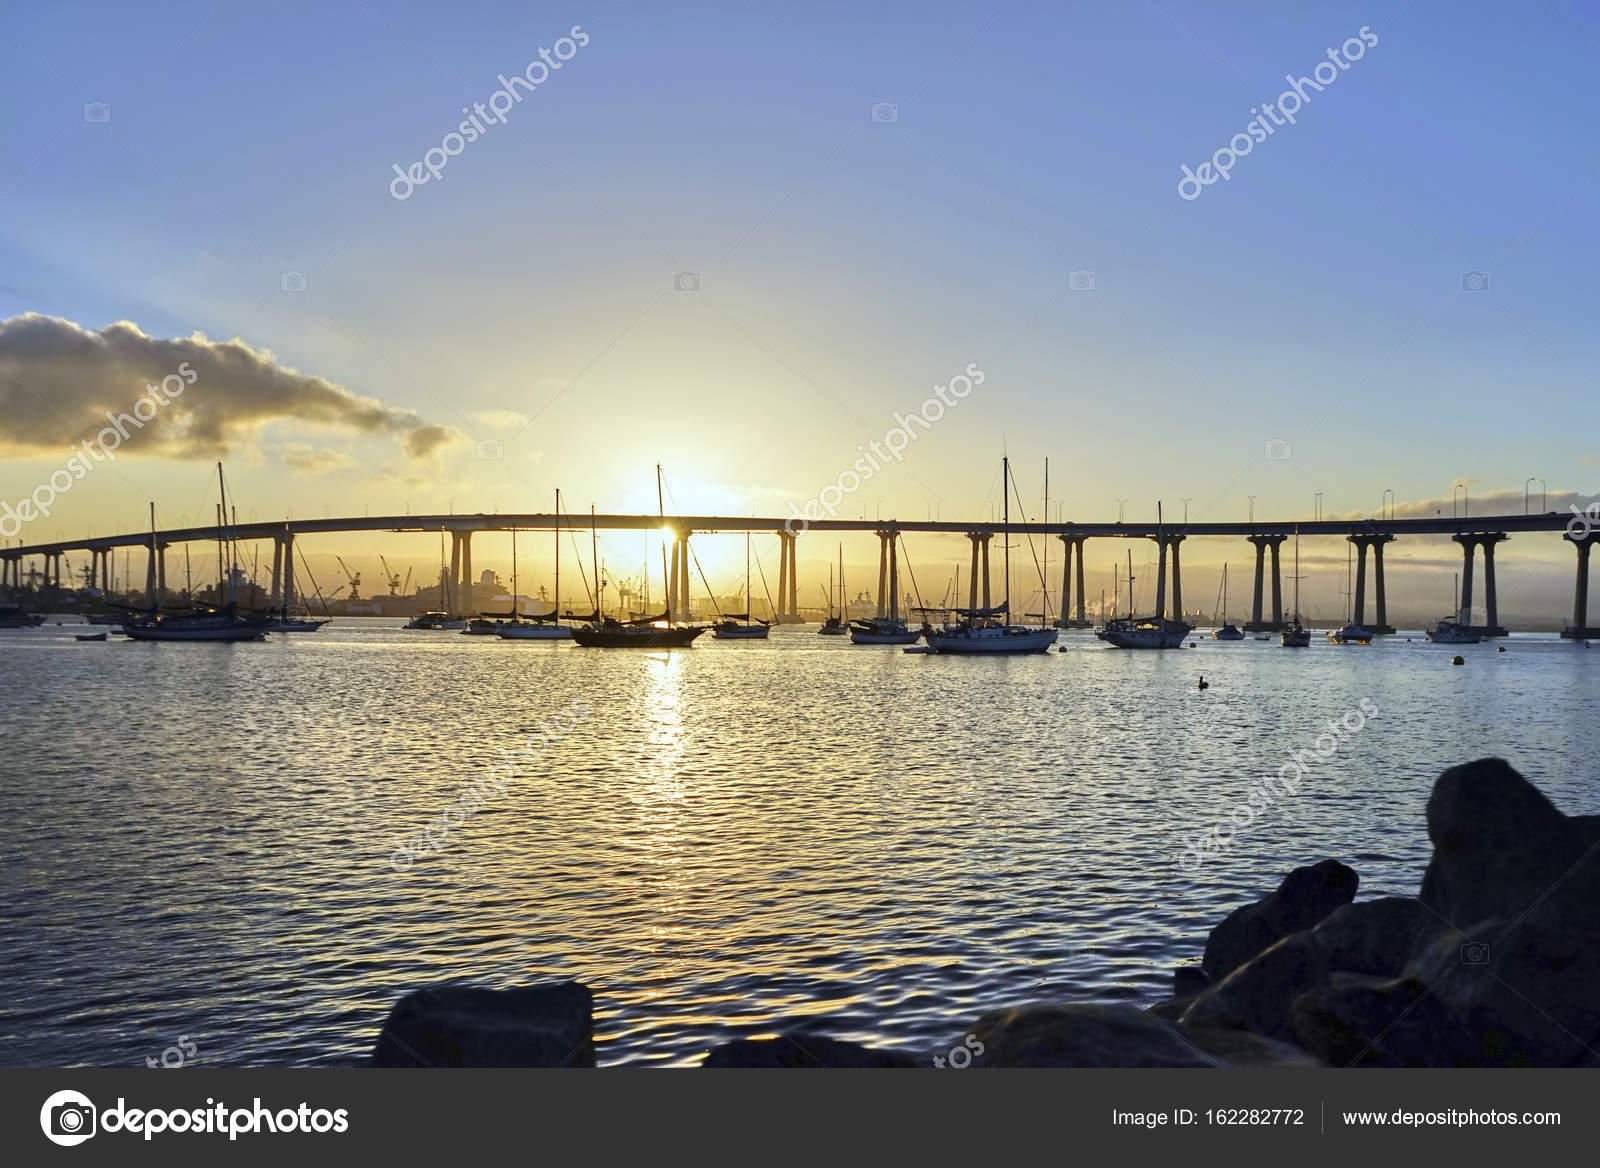 Anchored Boats Greet The Early Morning Sun In Sunny San Diego